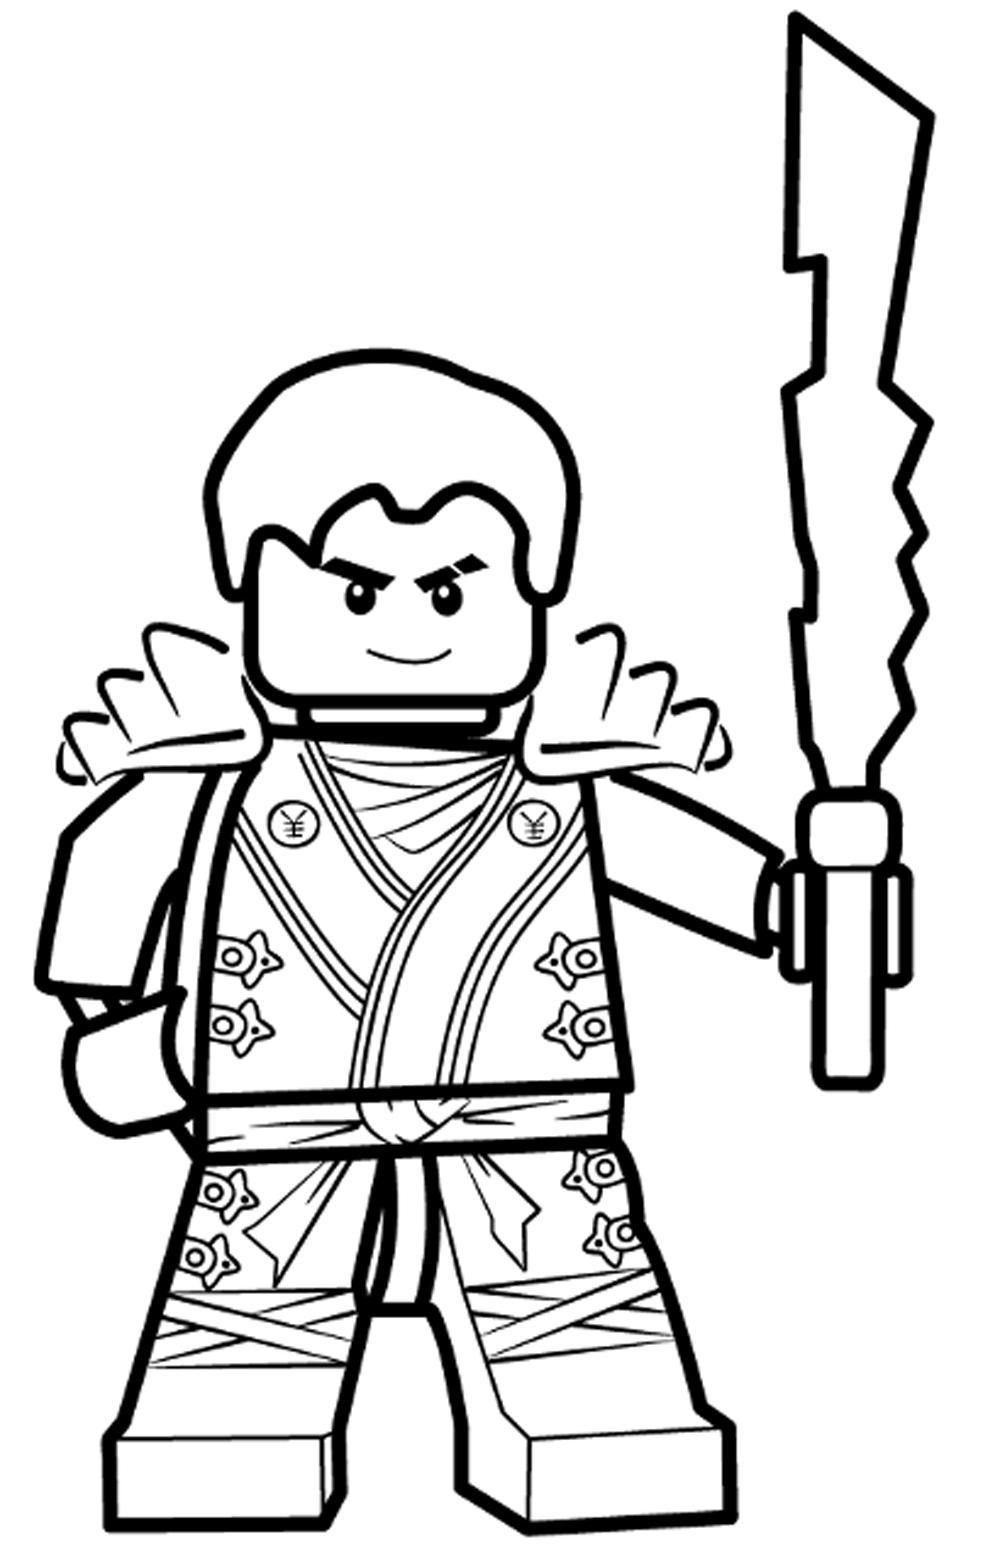 lego colouring in pages create your own lego coloring pages for kids colouring pages in lego